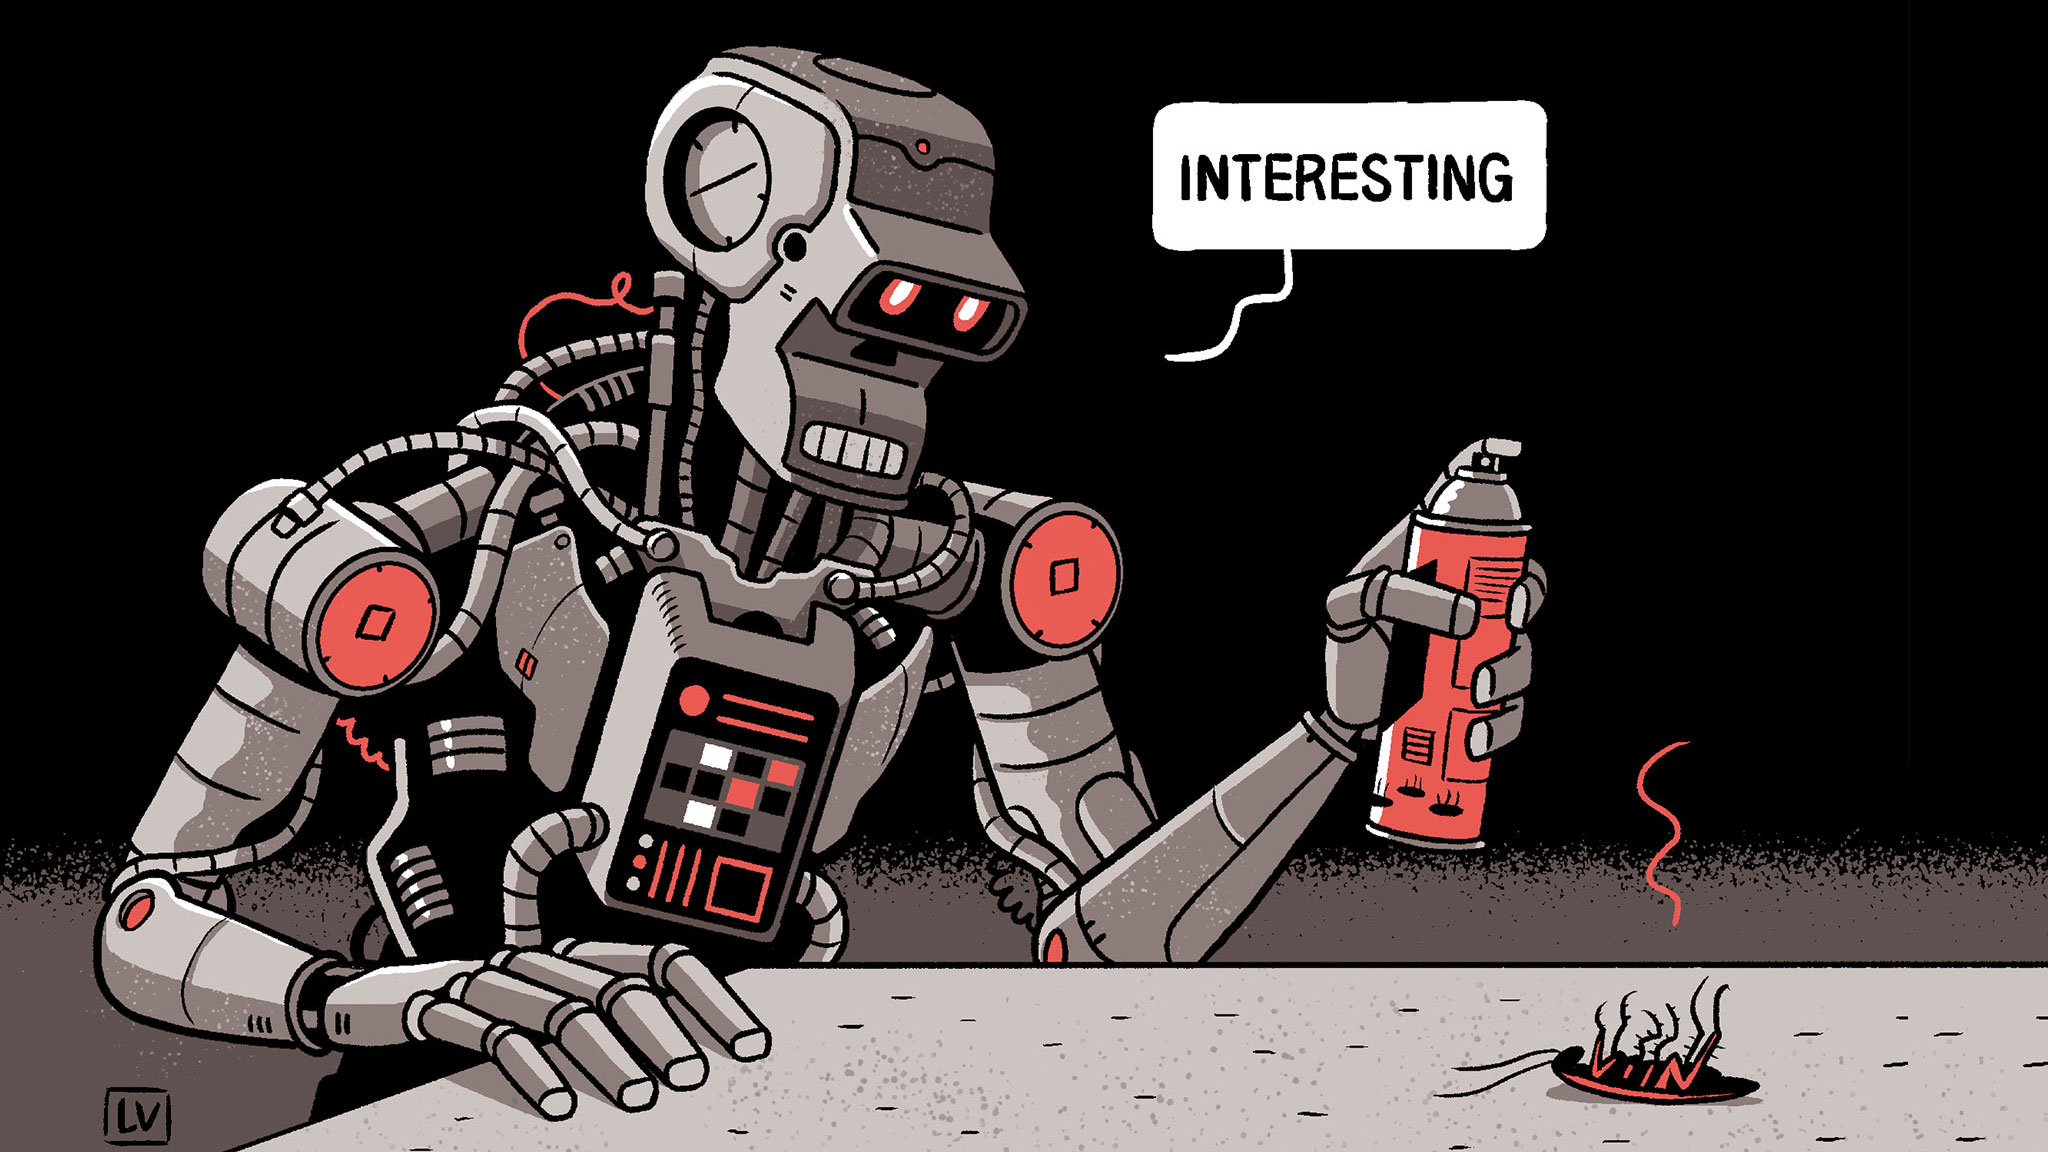 Killer robots and cunning plans